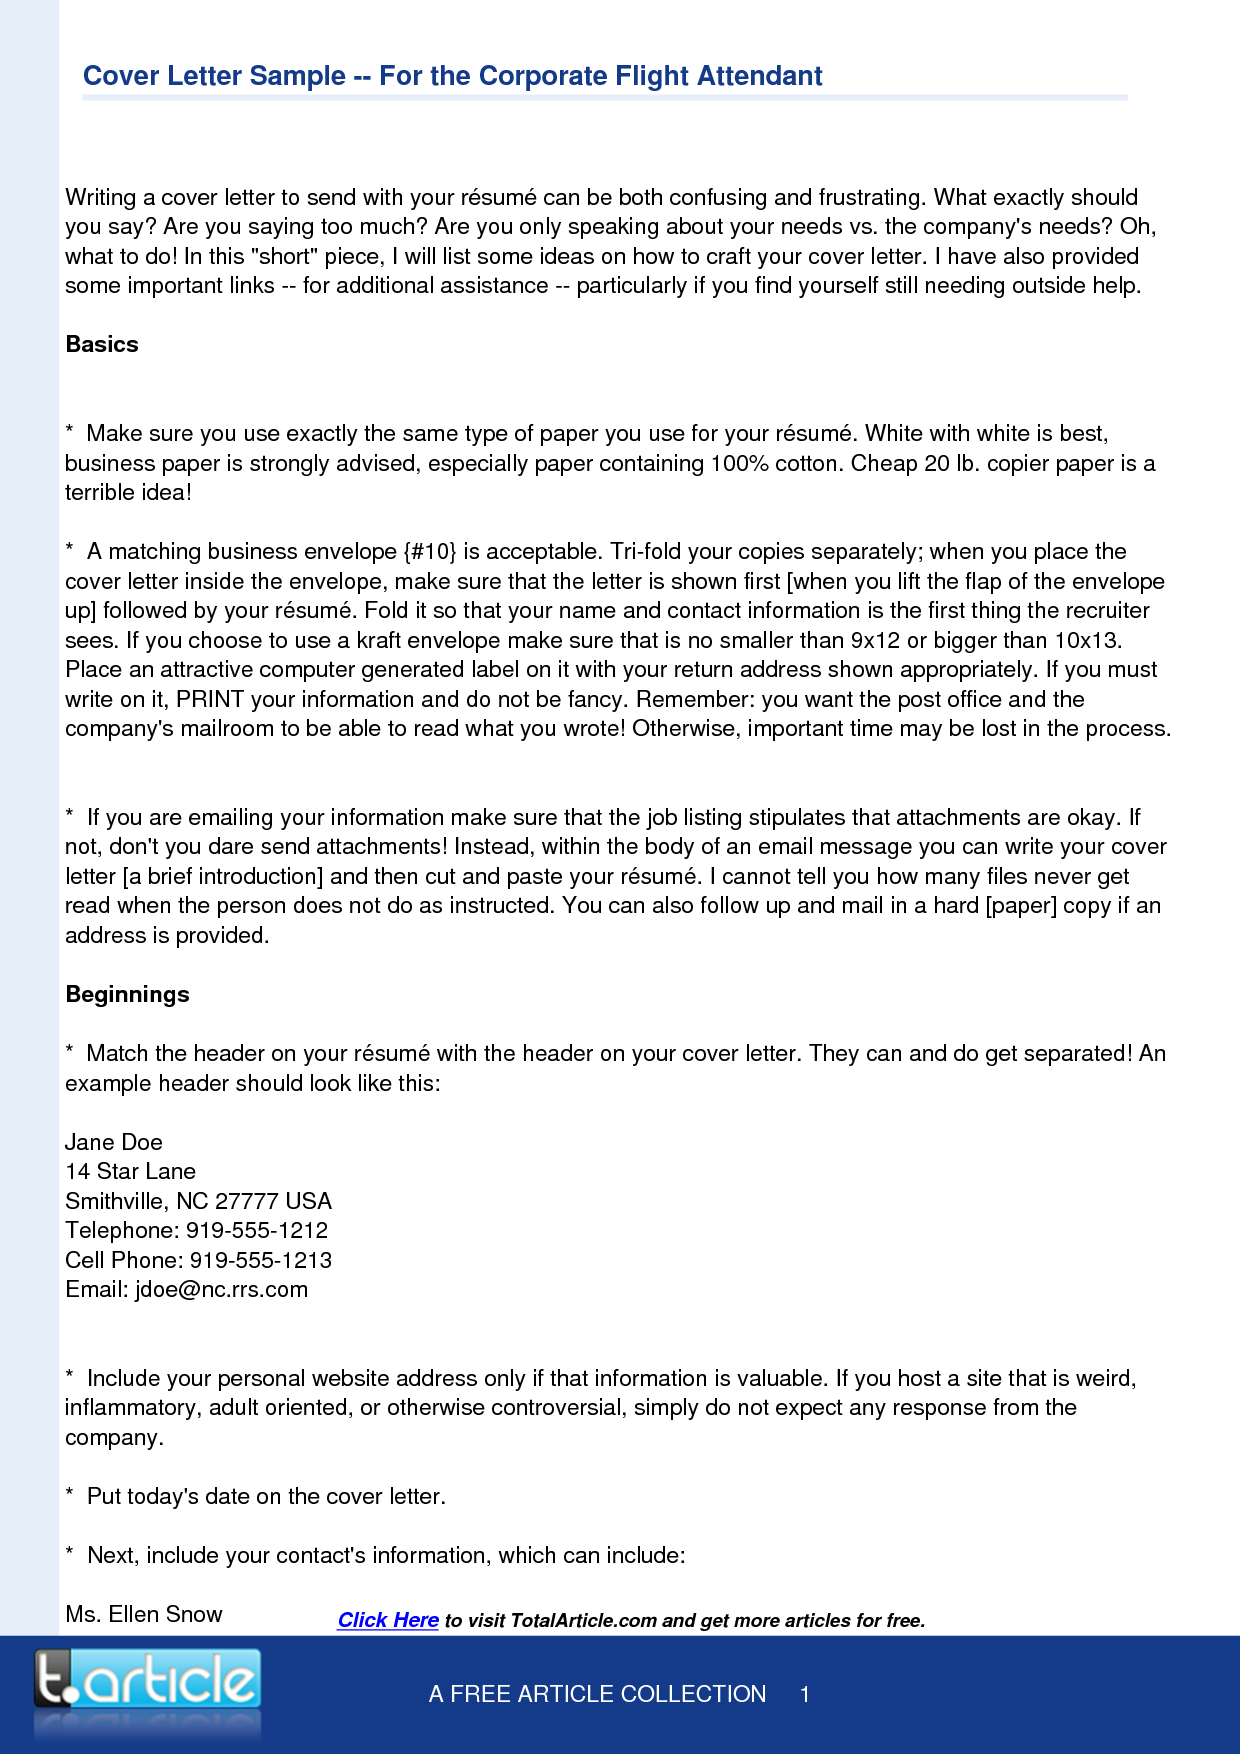 Flight Attendant Cover Letter Template | Cover letter ...